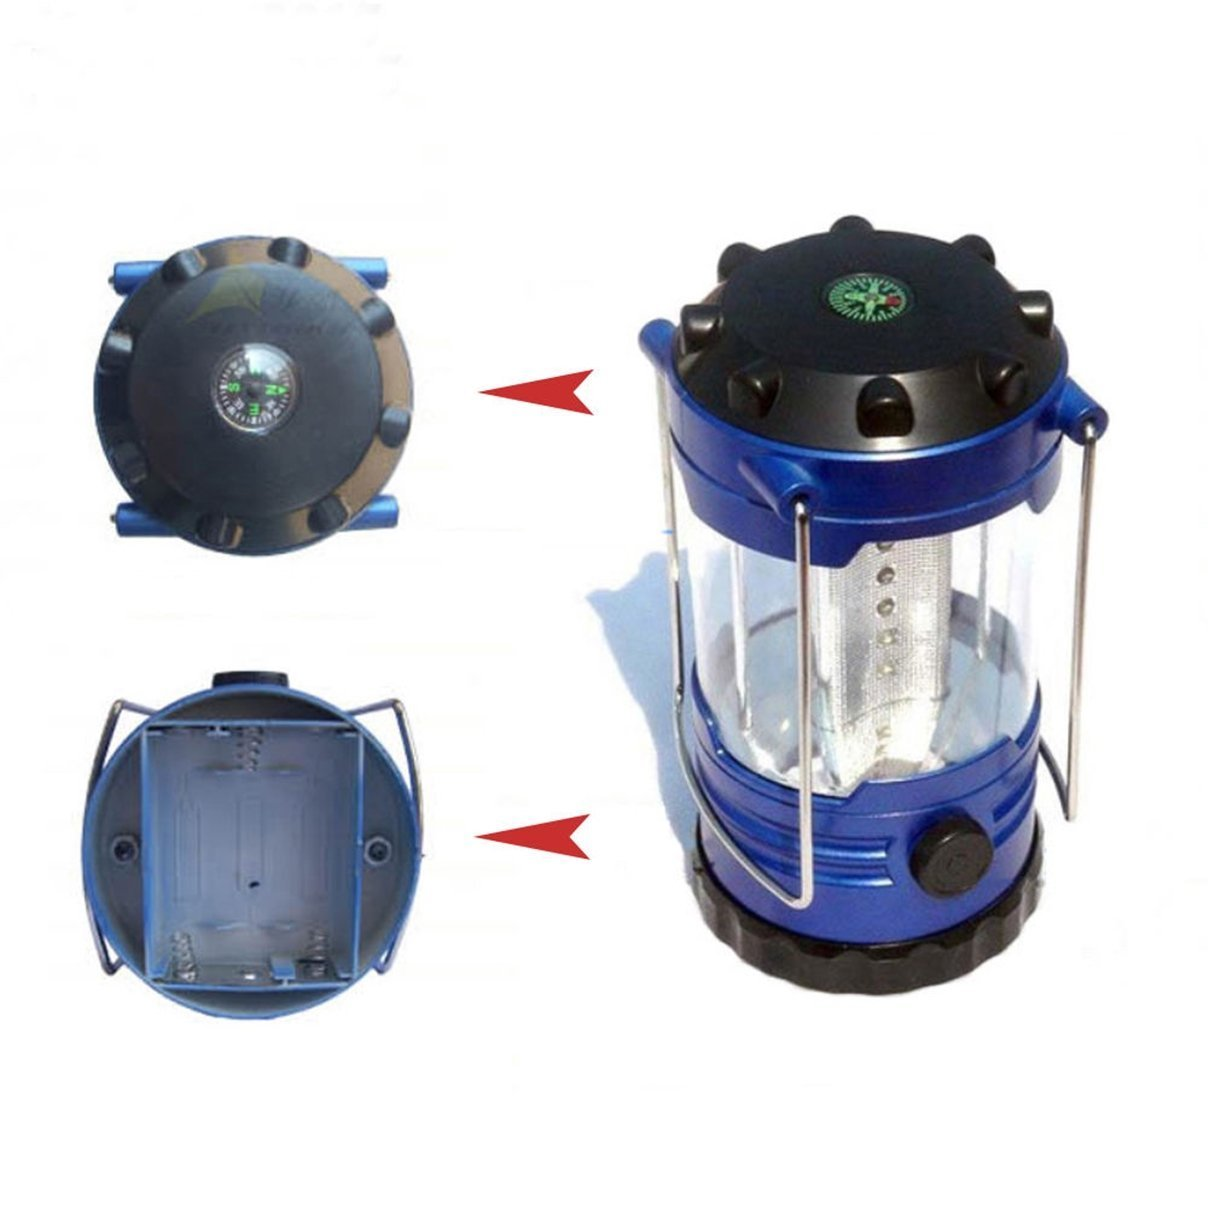 Fiduciary Modern 12x LED Nightlight Lantern Shockproof Portable Light Desk Lamp Color Blue Metallic or Red with Compass Thailand .